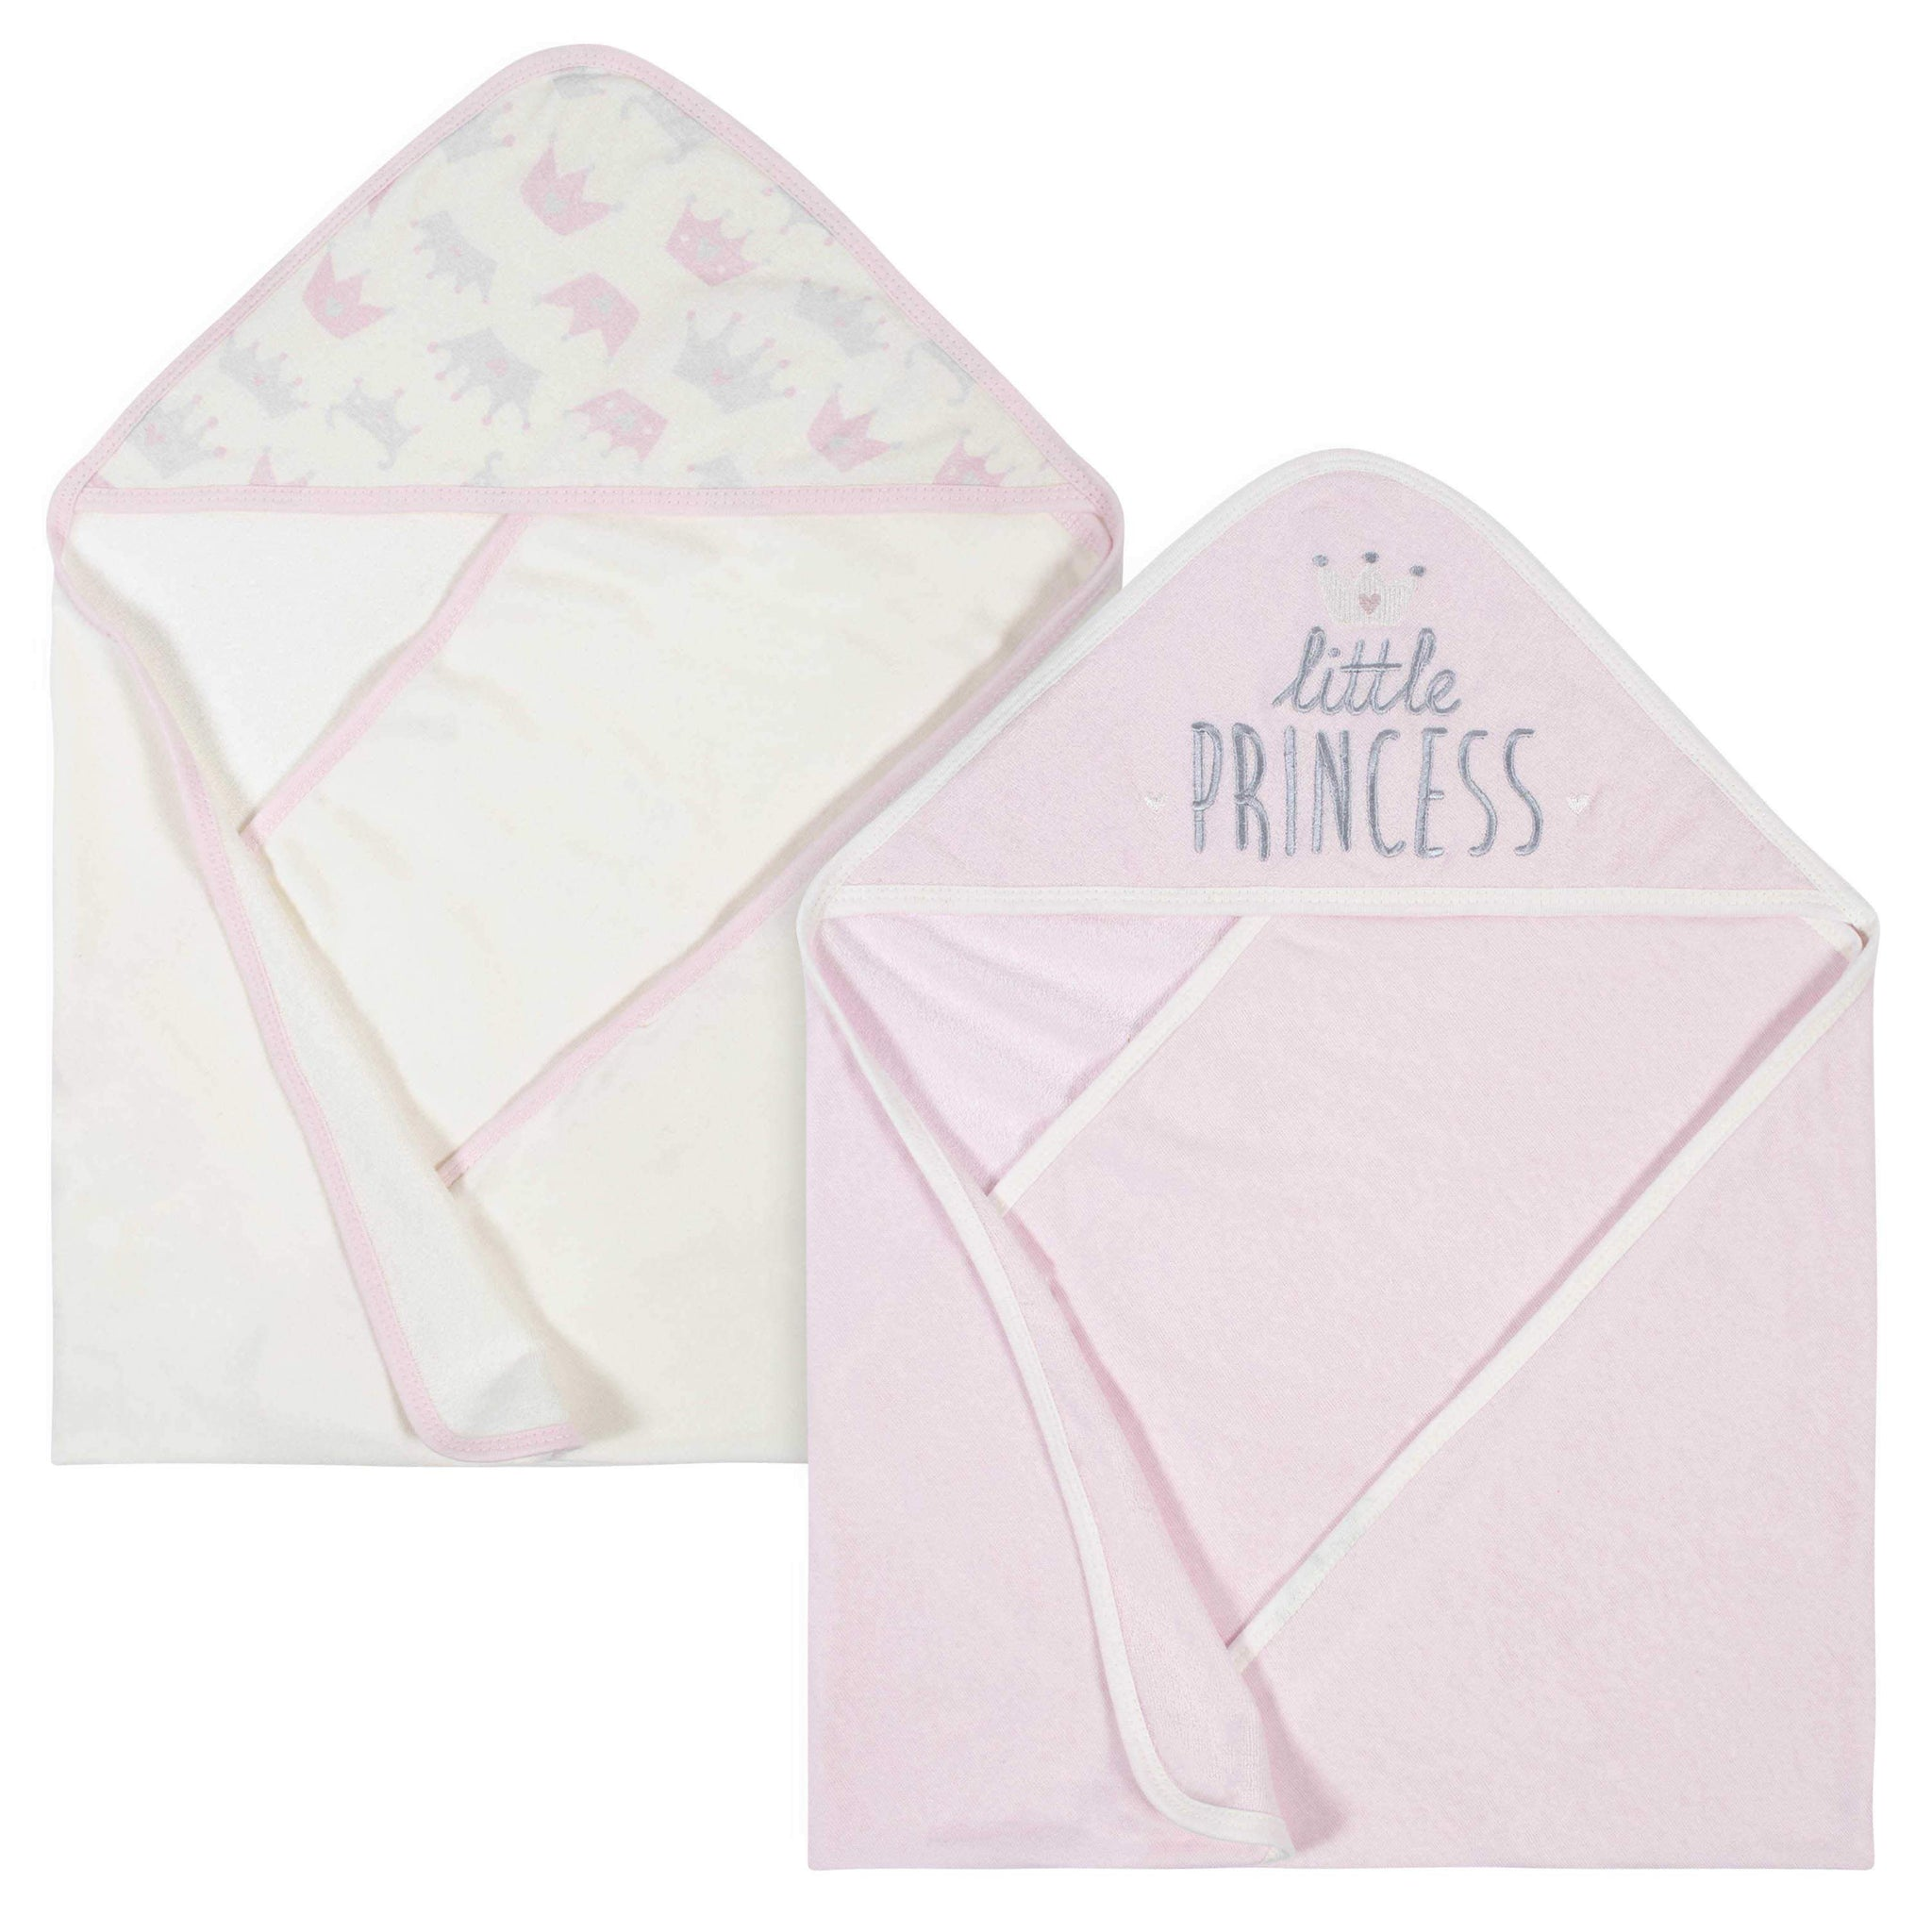 2-Pack Baby Girls' Princess Terry Hooded Towels